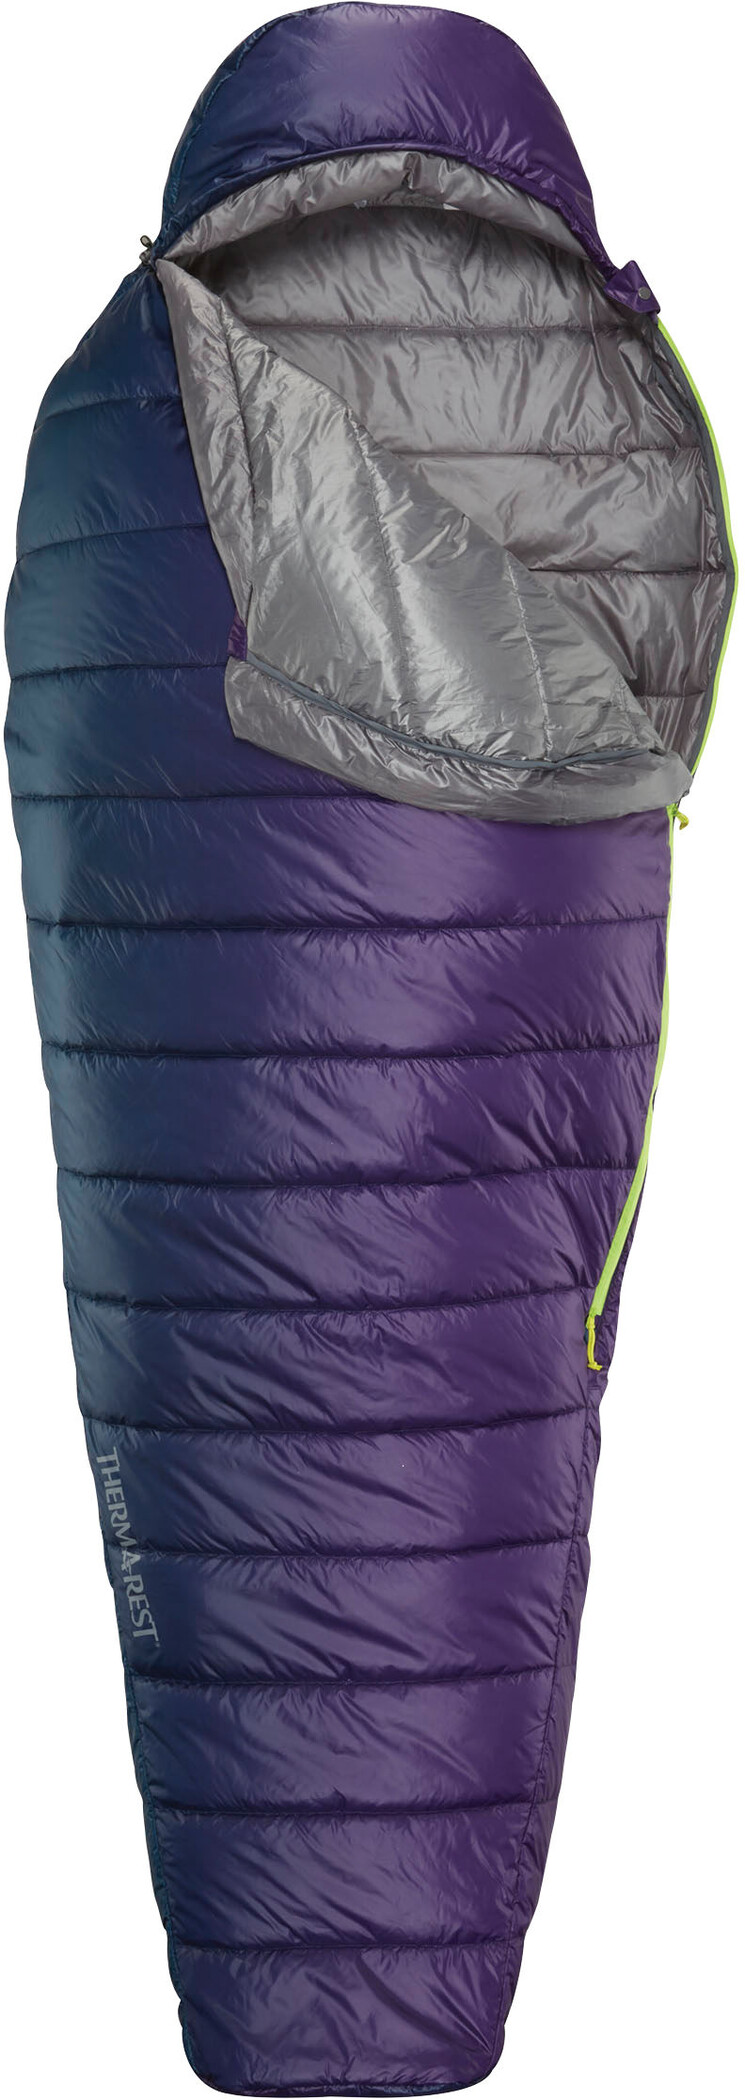 Therm-a-Rest SpaceCowboy 45 Sleeping Bag small, galactic (2019) | Misc. Transportation and Storage